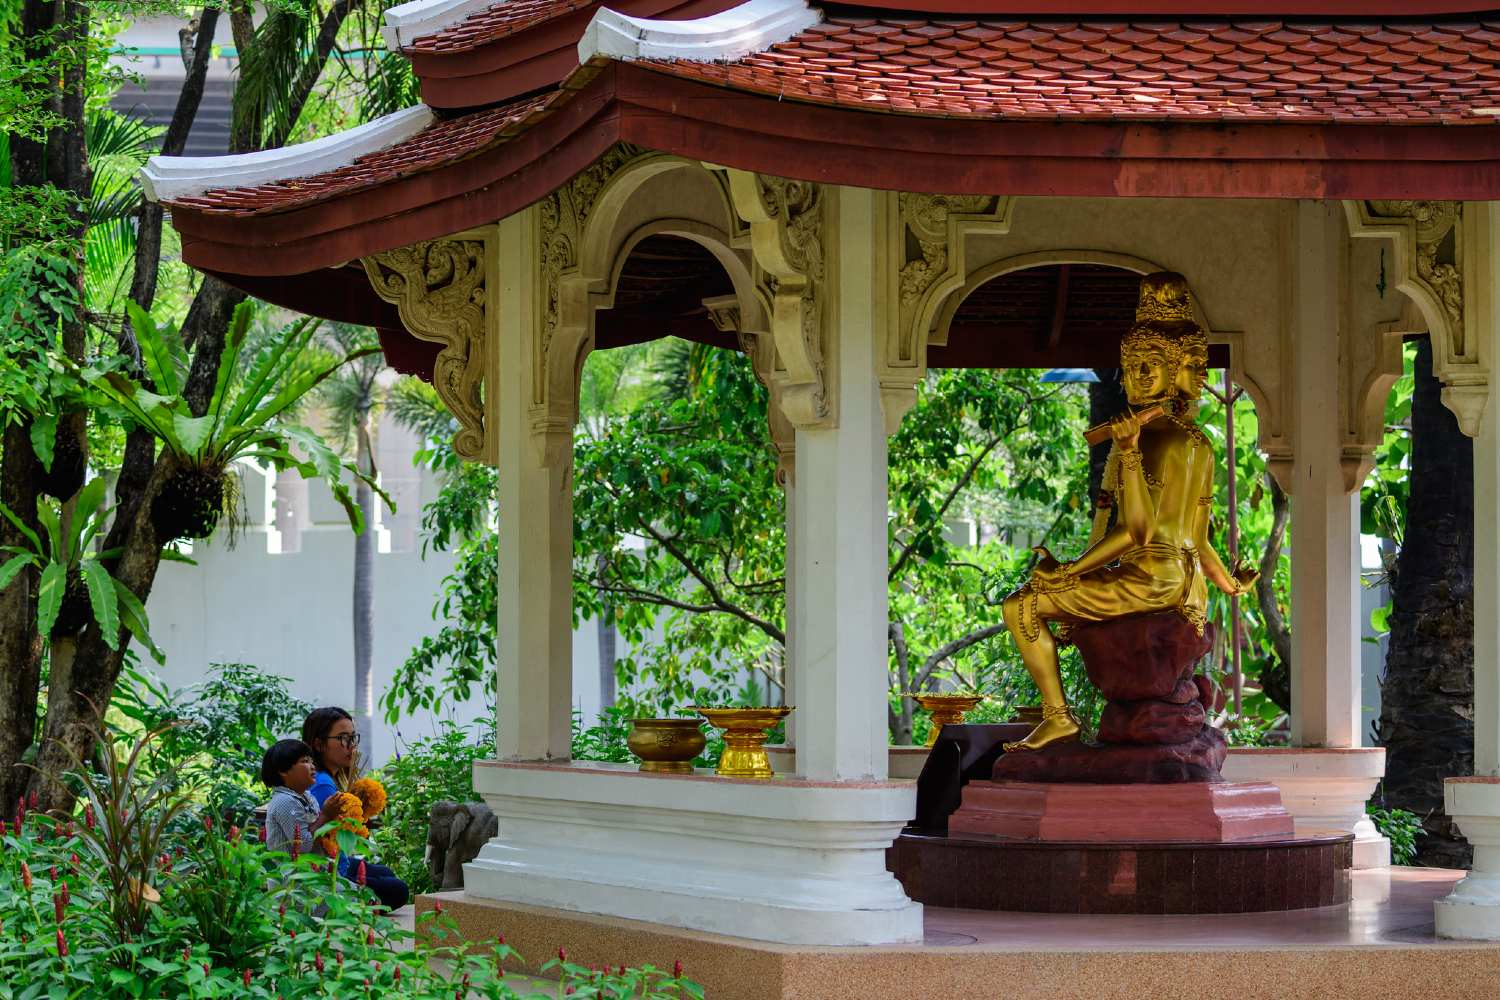 Shady fairytale garden with bridges and special statues in the garden of the Erawan Museum in Bangkok like of the god Phra Phrom